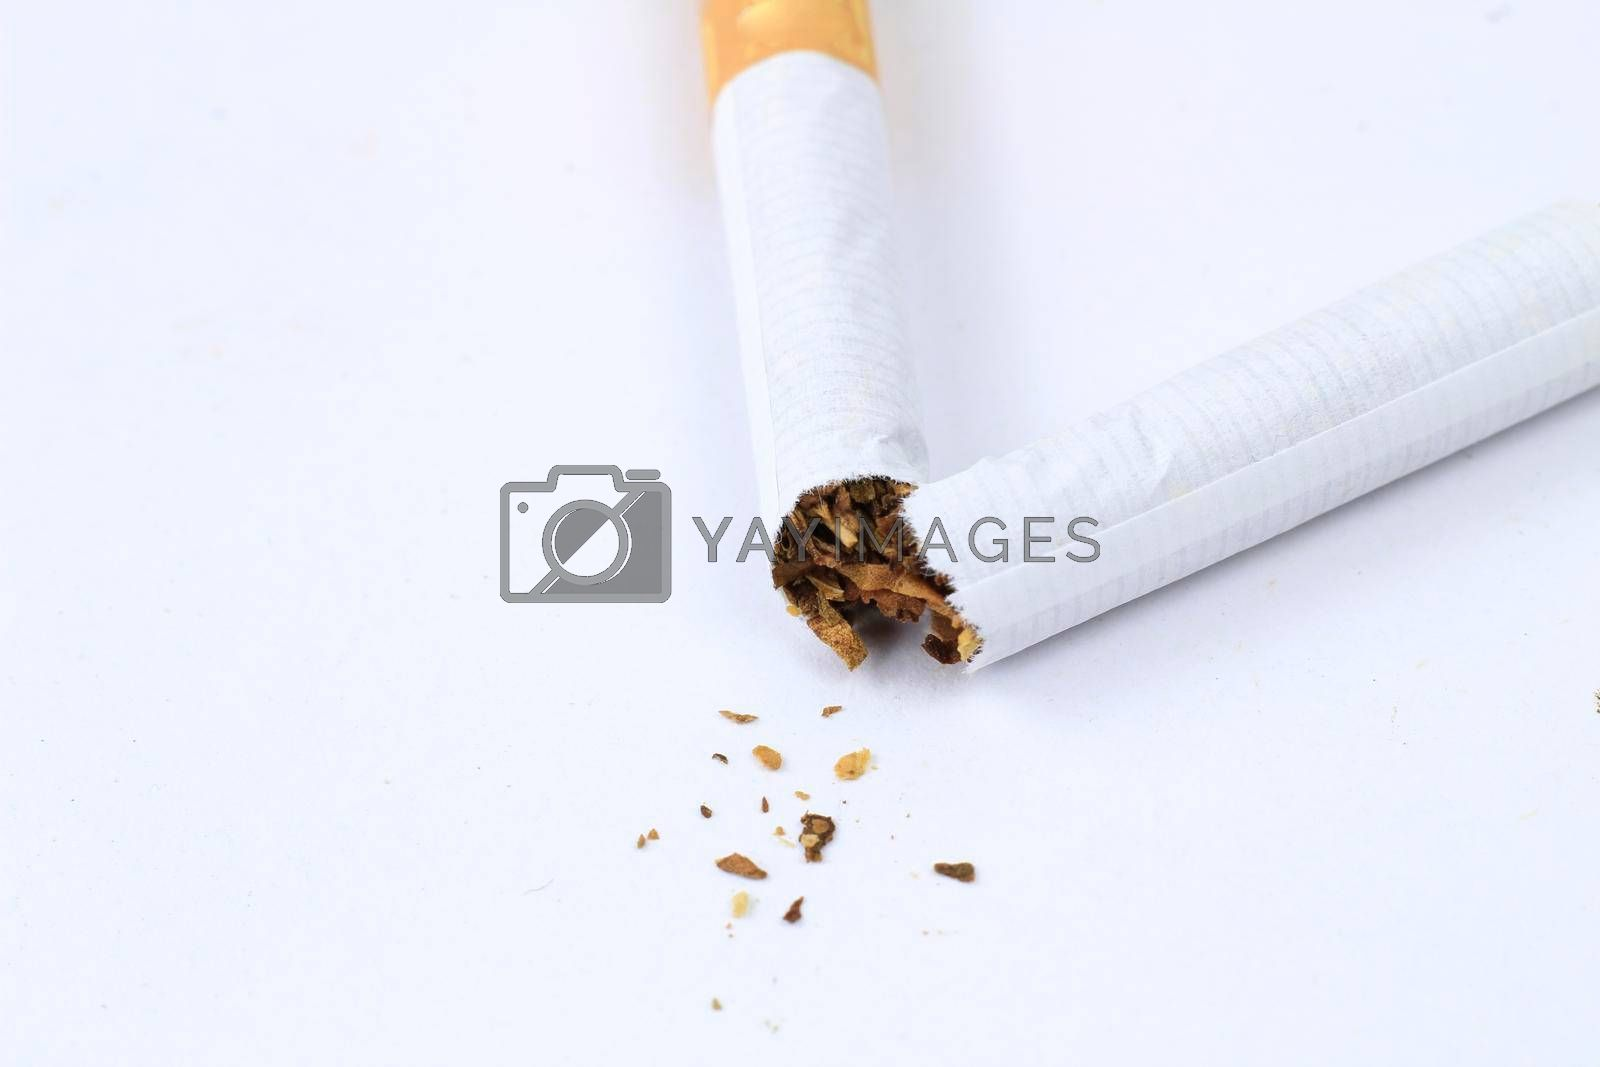 Broken cigarette on white background. Stop smoking concept photography.